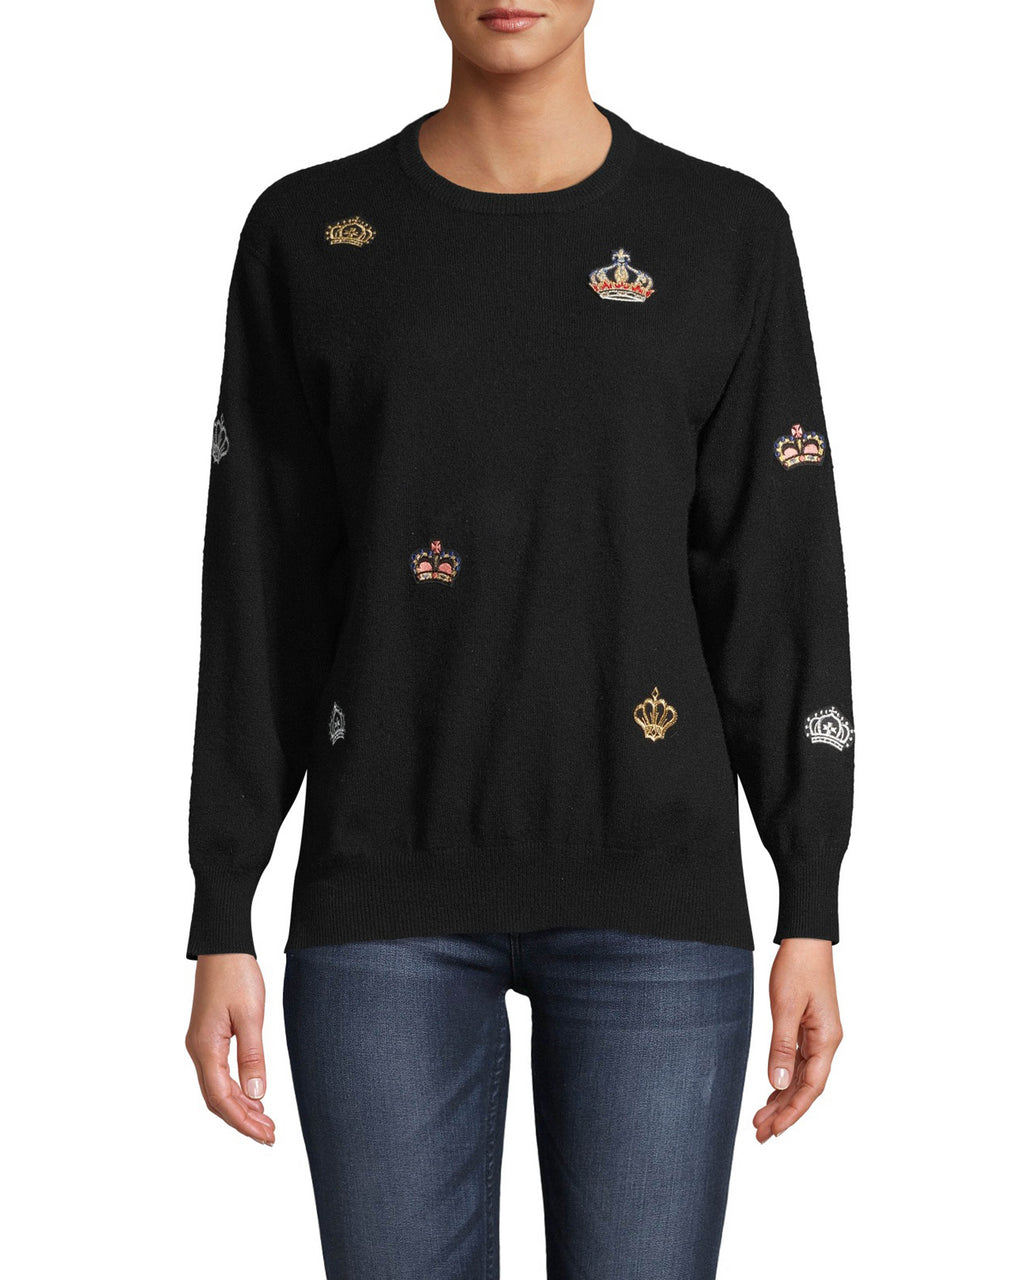 CT18276 - CASHMERE CREW NECK SWEATER W/ CROWN PATCHES - tops - knitwear - As if our 100% cashmere sweater didn't make you feel luxurious already, this one has shimmery crown patches throughout for an extra luxe feel. Designed in a classic crew neck silhouette with ribbed sleeves. Add 1 line break Stylist tip: Pair with black denim and a leather jacket.